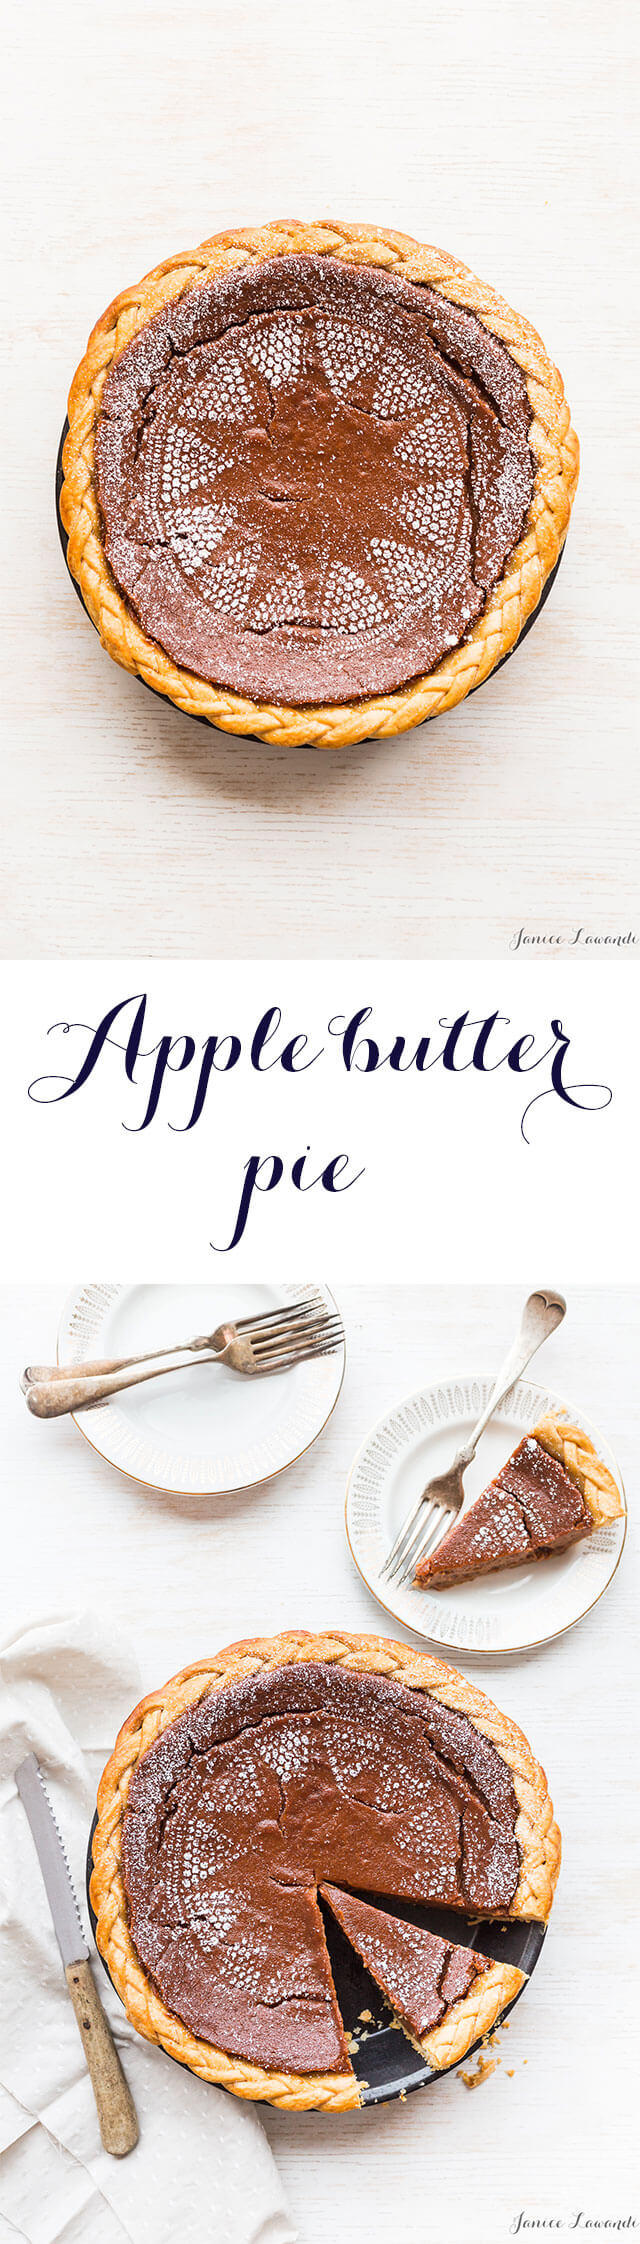 Apple butter pie recipe that is a great pumpkin pie alternative for Thanksgiving made with an all butter crust and apple butter filling